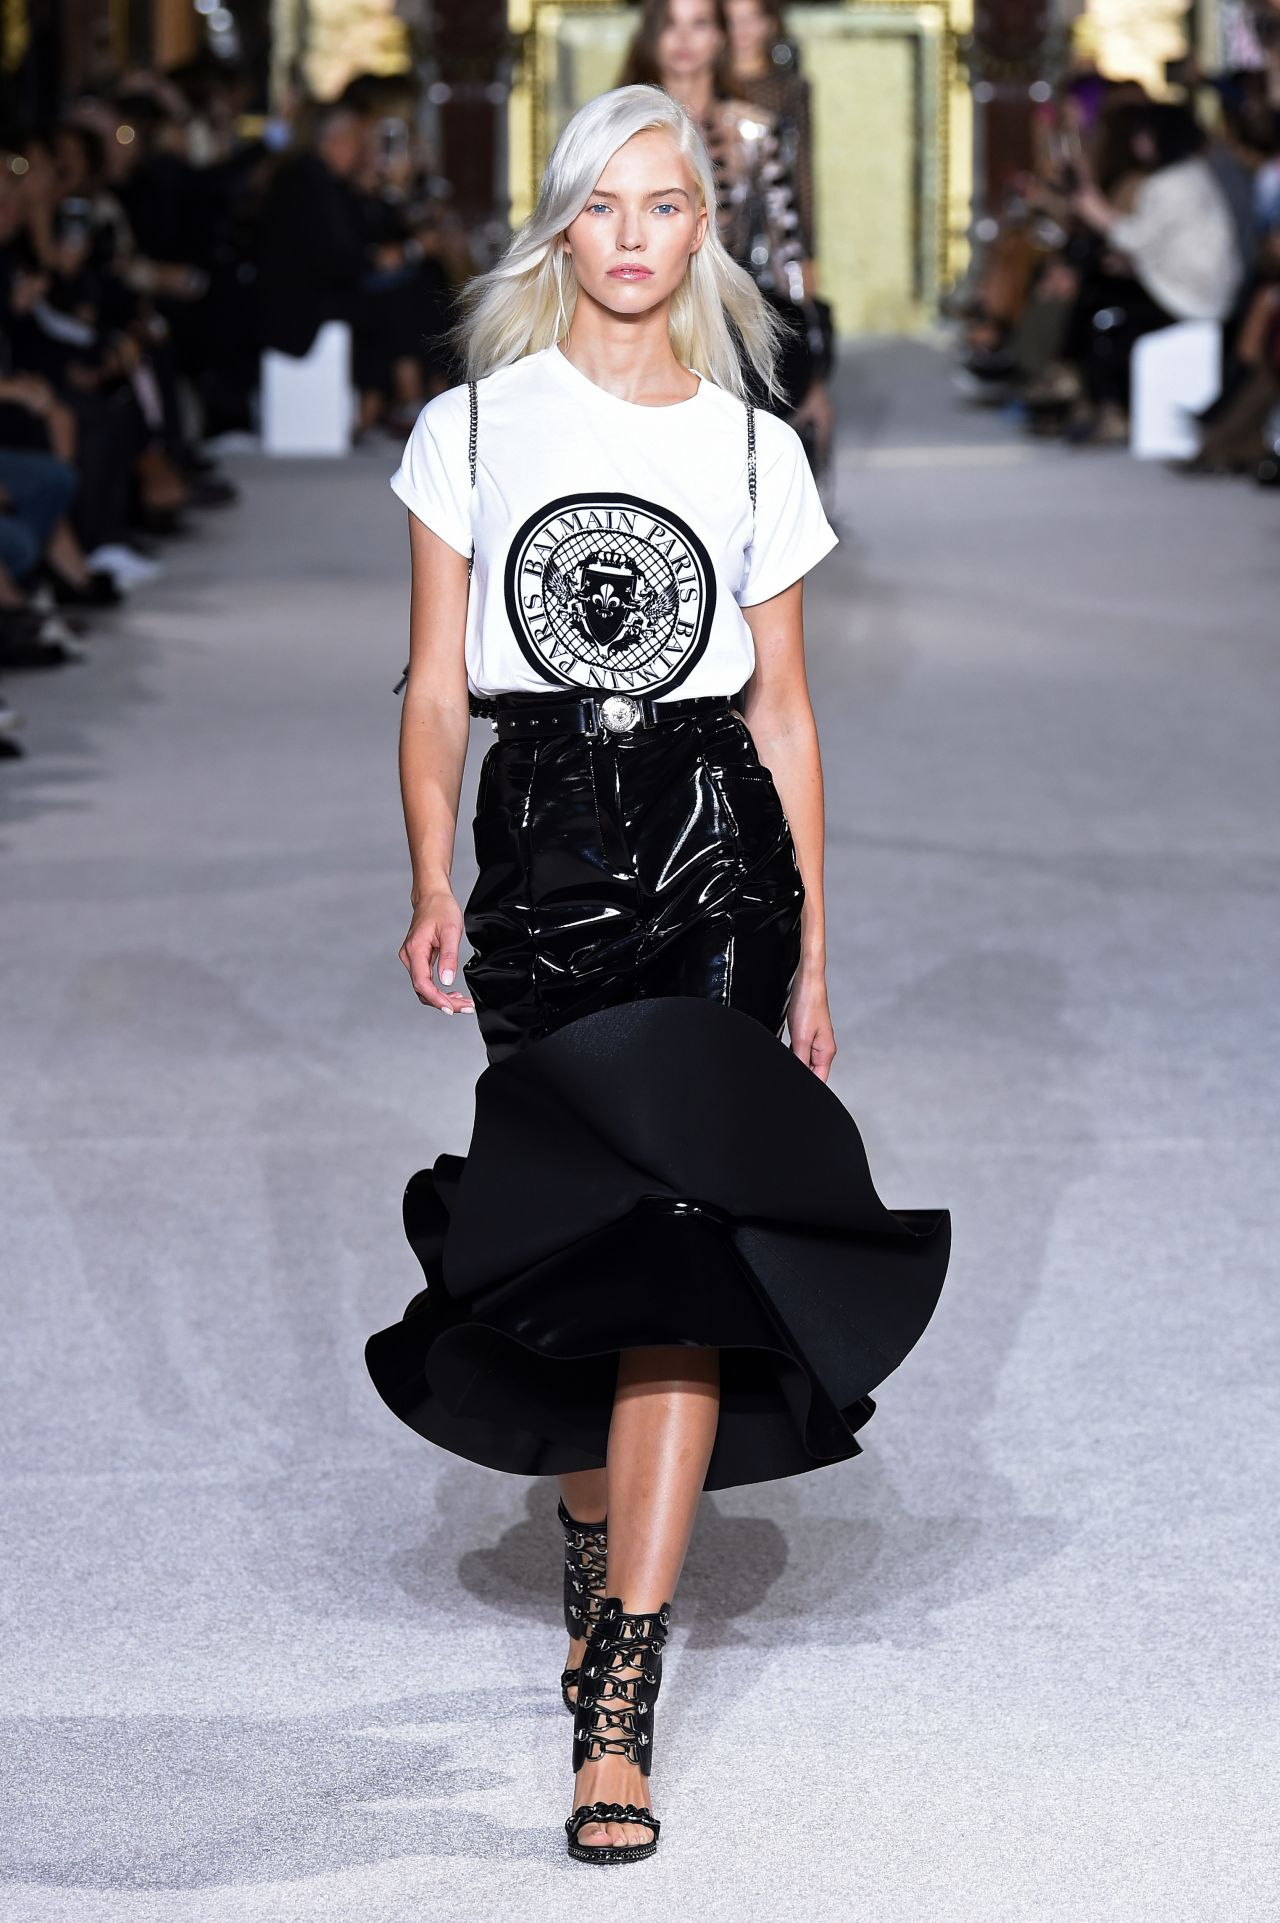 Image result for Sasha Luss show